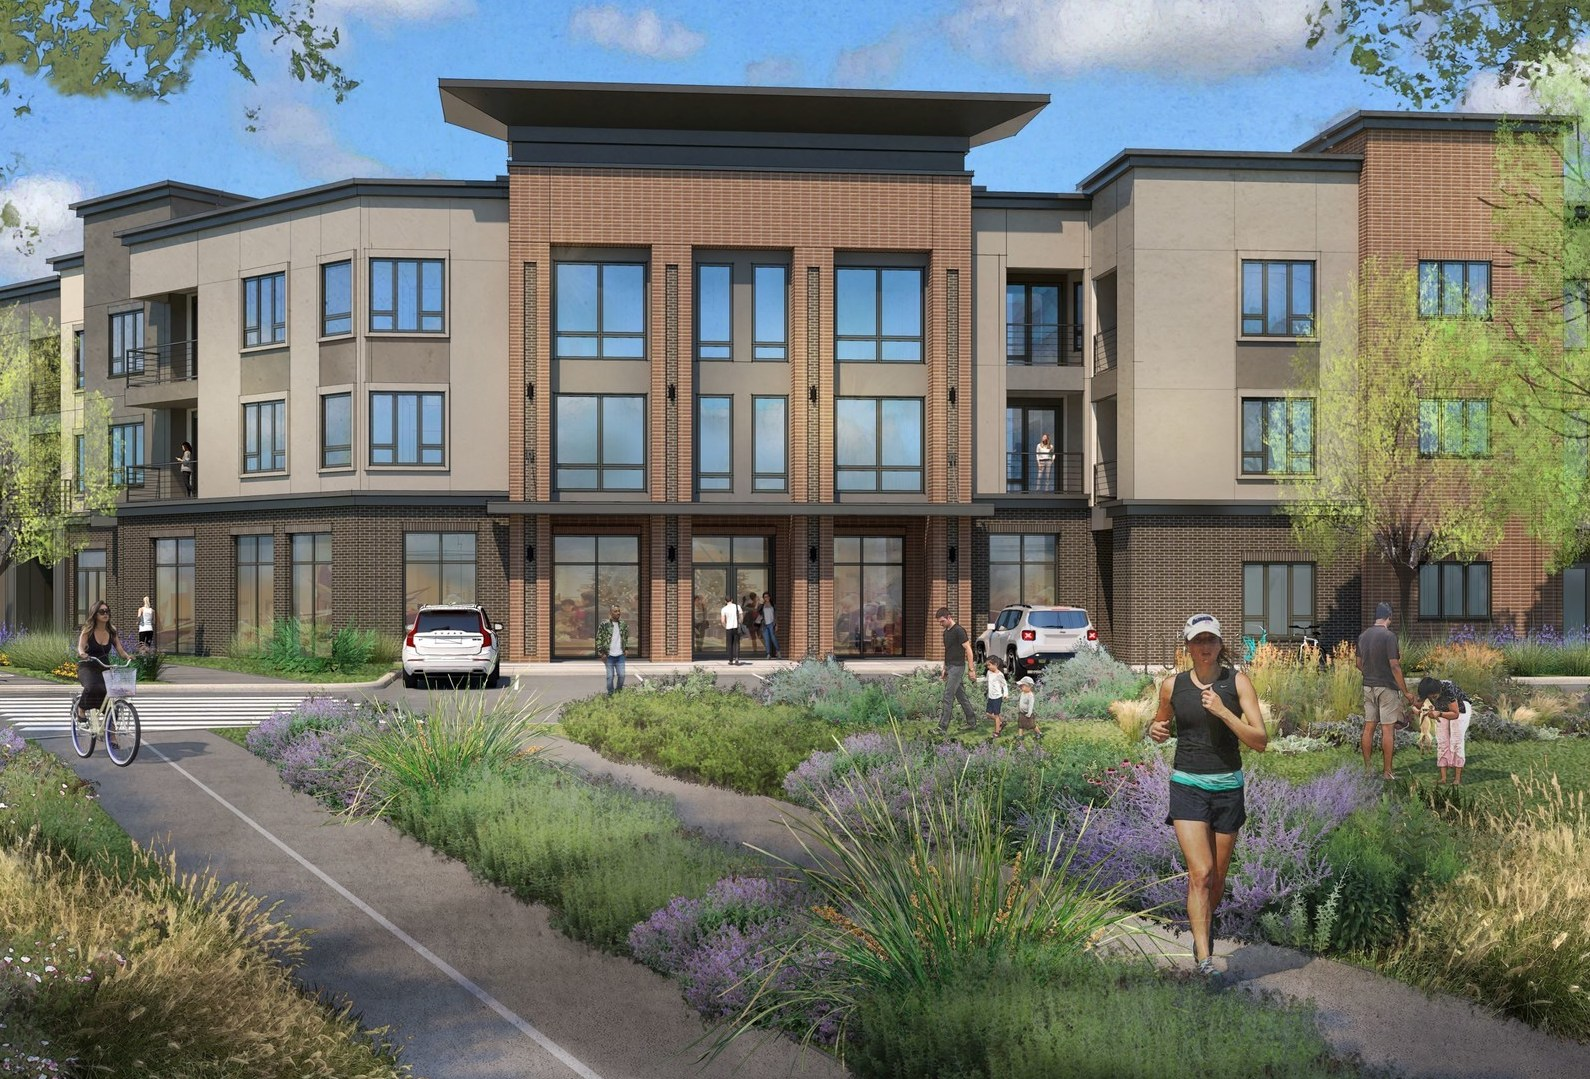 Embrey Announces Land Acquisition Closing for 304-Unit Hensley at The District Apartment Community in Denver Submarket of Centennial